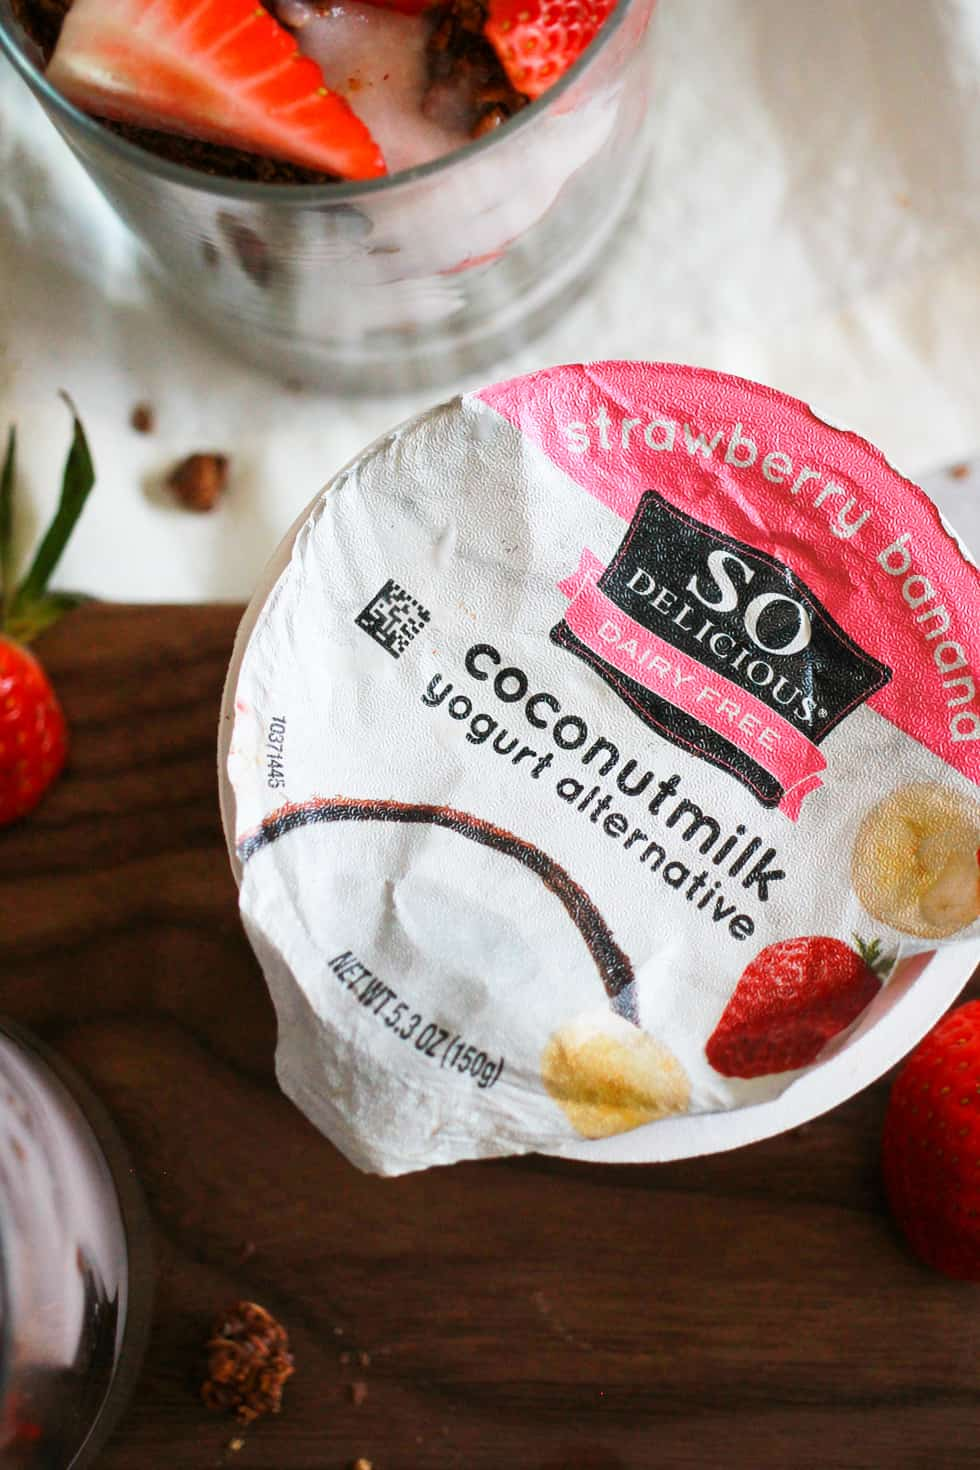 Carton of So Delicious strawberry banana yogurt alternative.